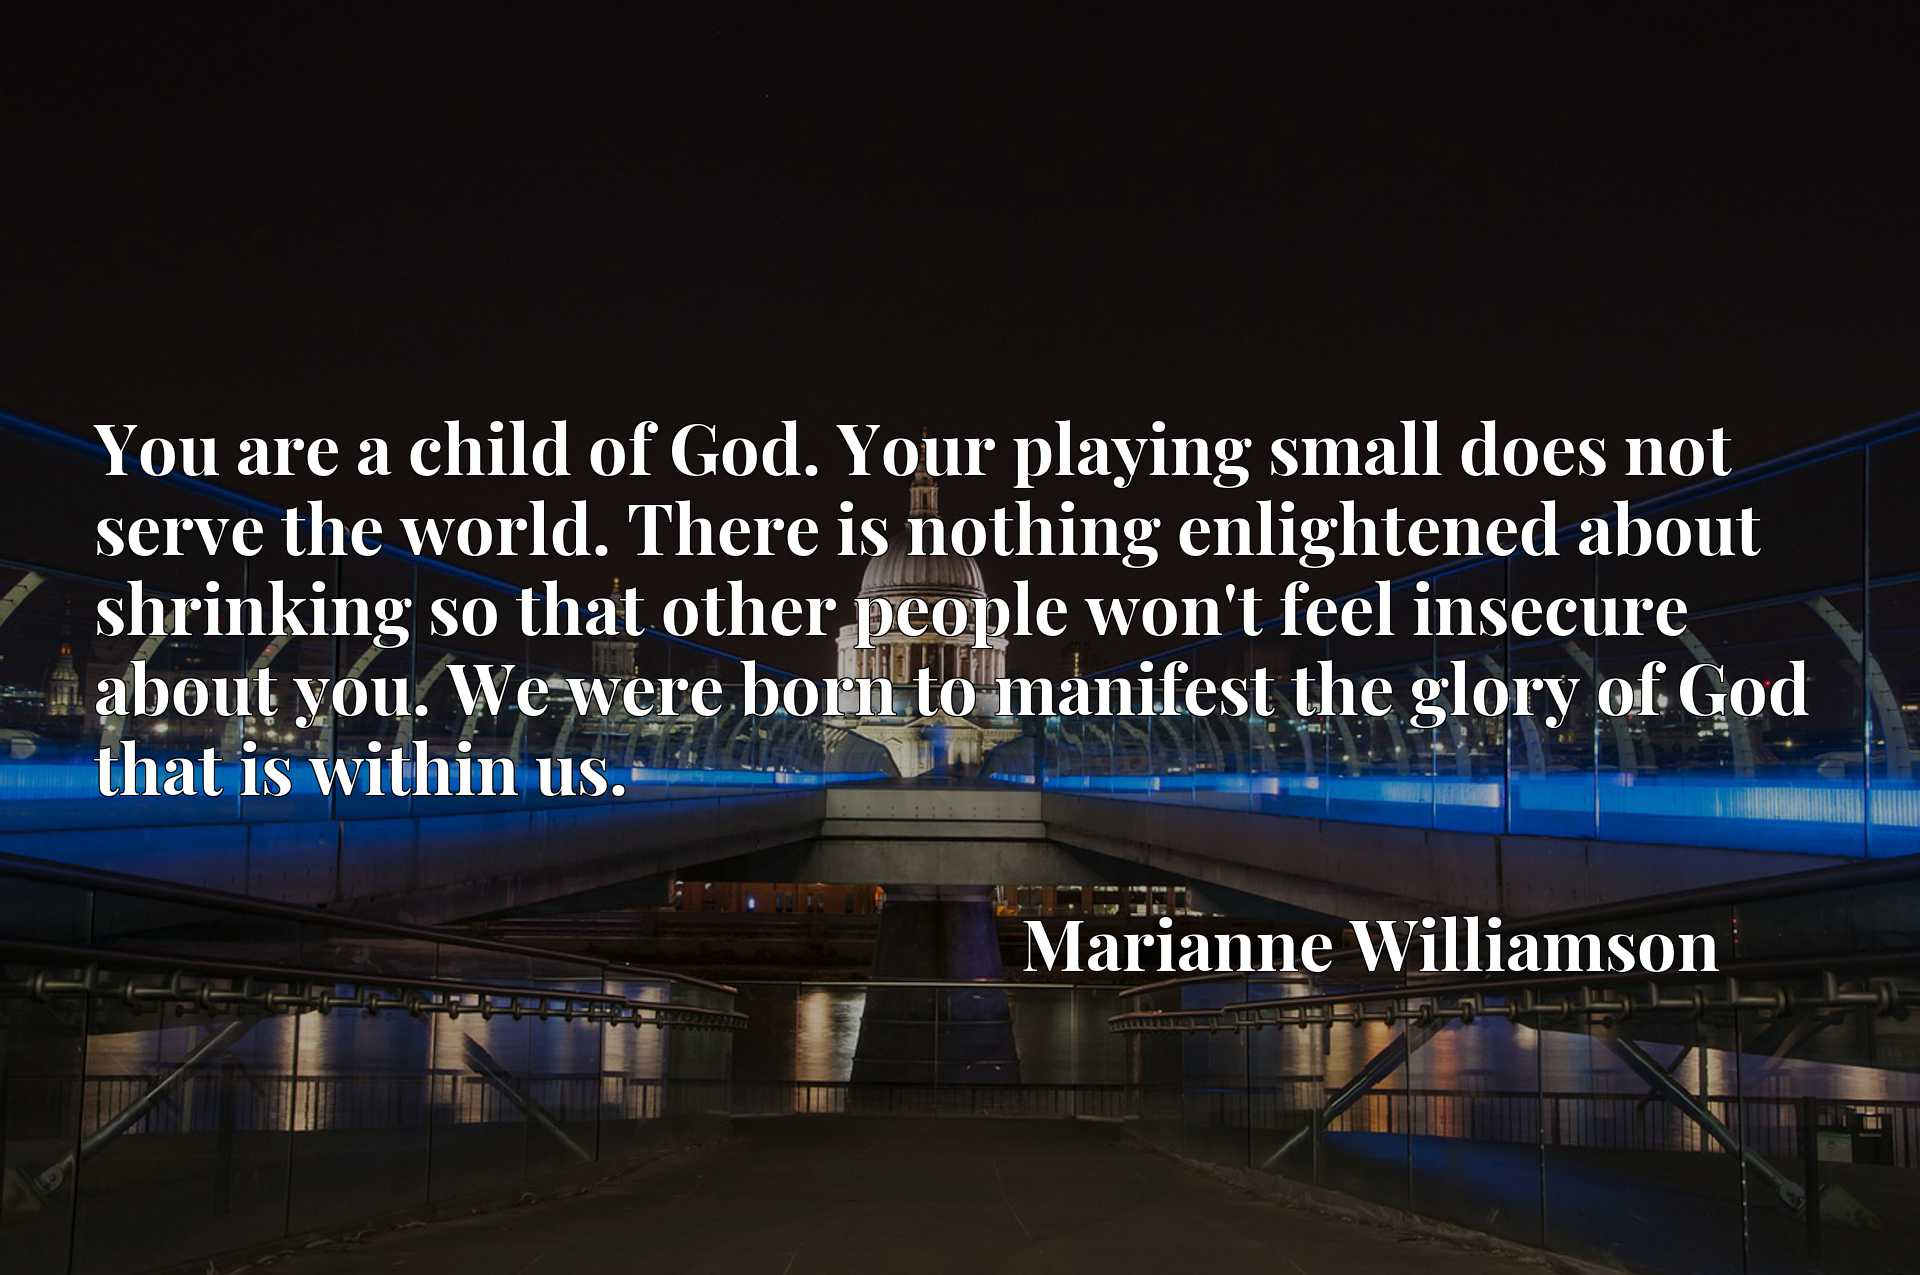 You are a child of God. Your playing small does not serve the world. There is nothing enlightened about shrinking so that other people won't feel insecure about you. We were born to manifest the glory of God that is within us.